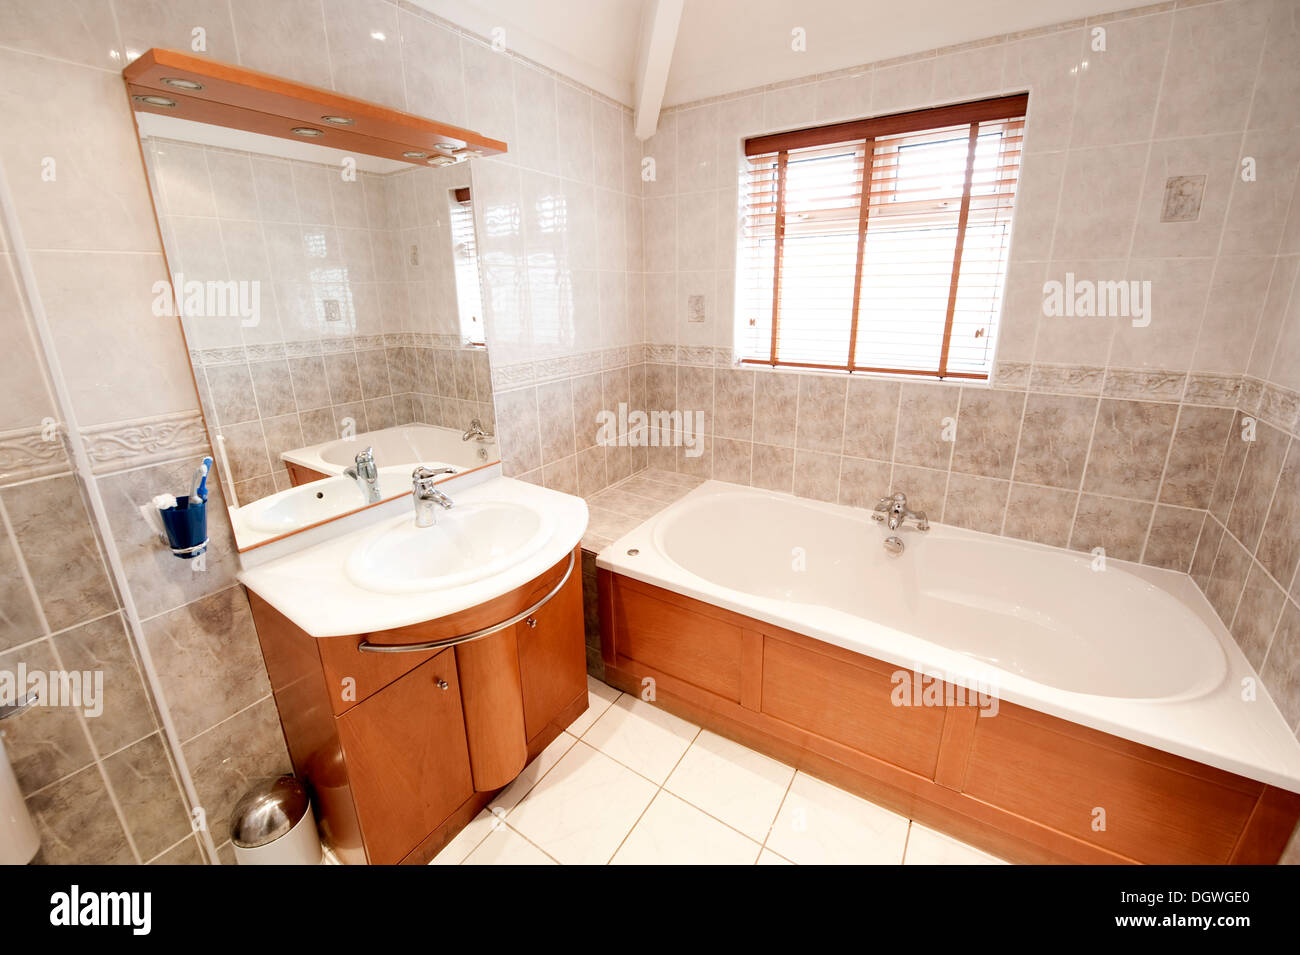 Modern house bath room bathroom washroom tub sink Stock Photo ...